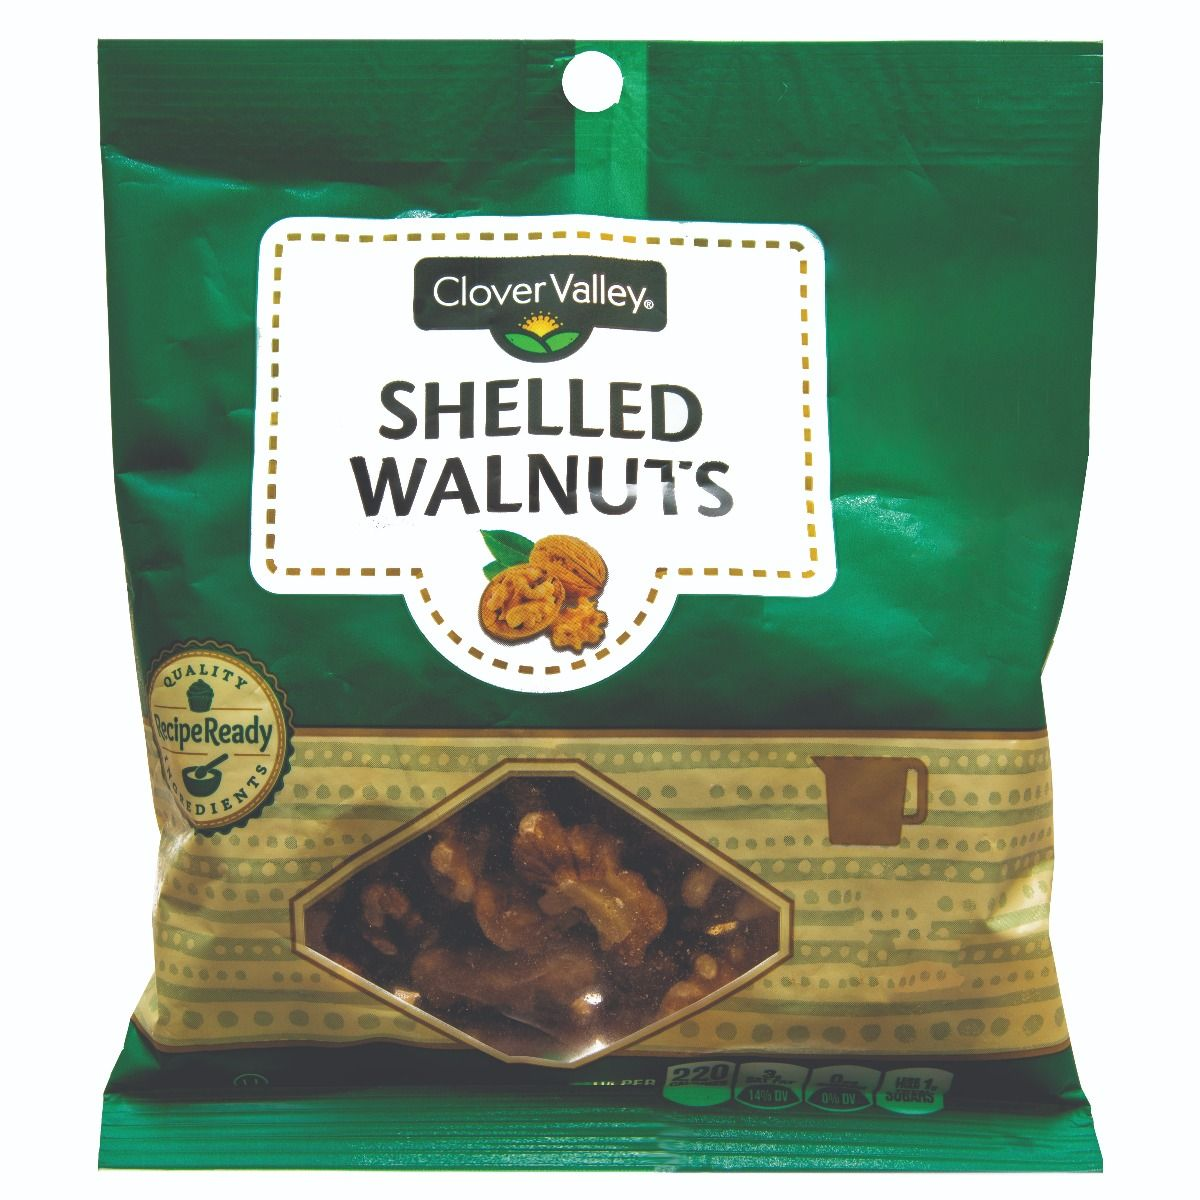 Clover Valley Shelled Walnuts, 4 oz